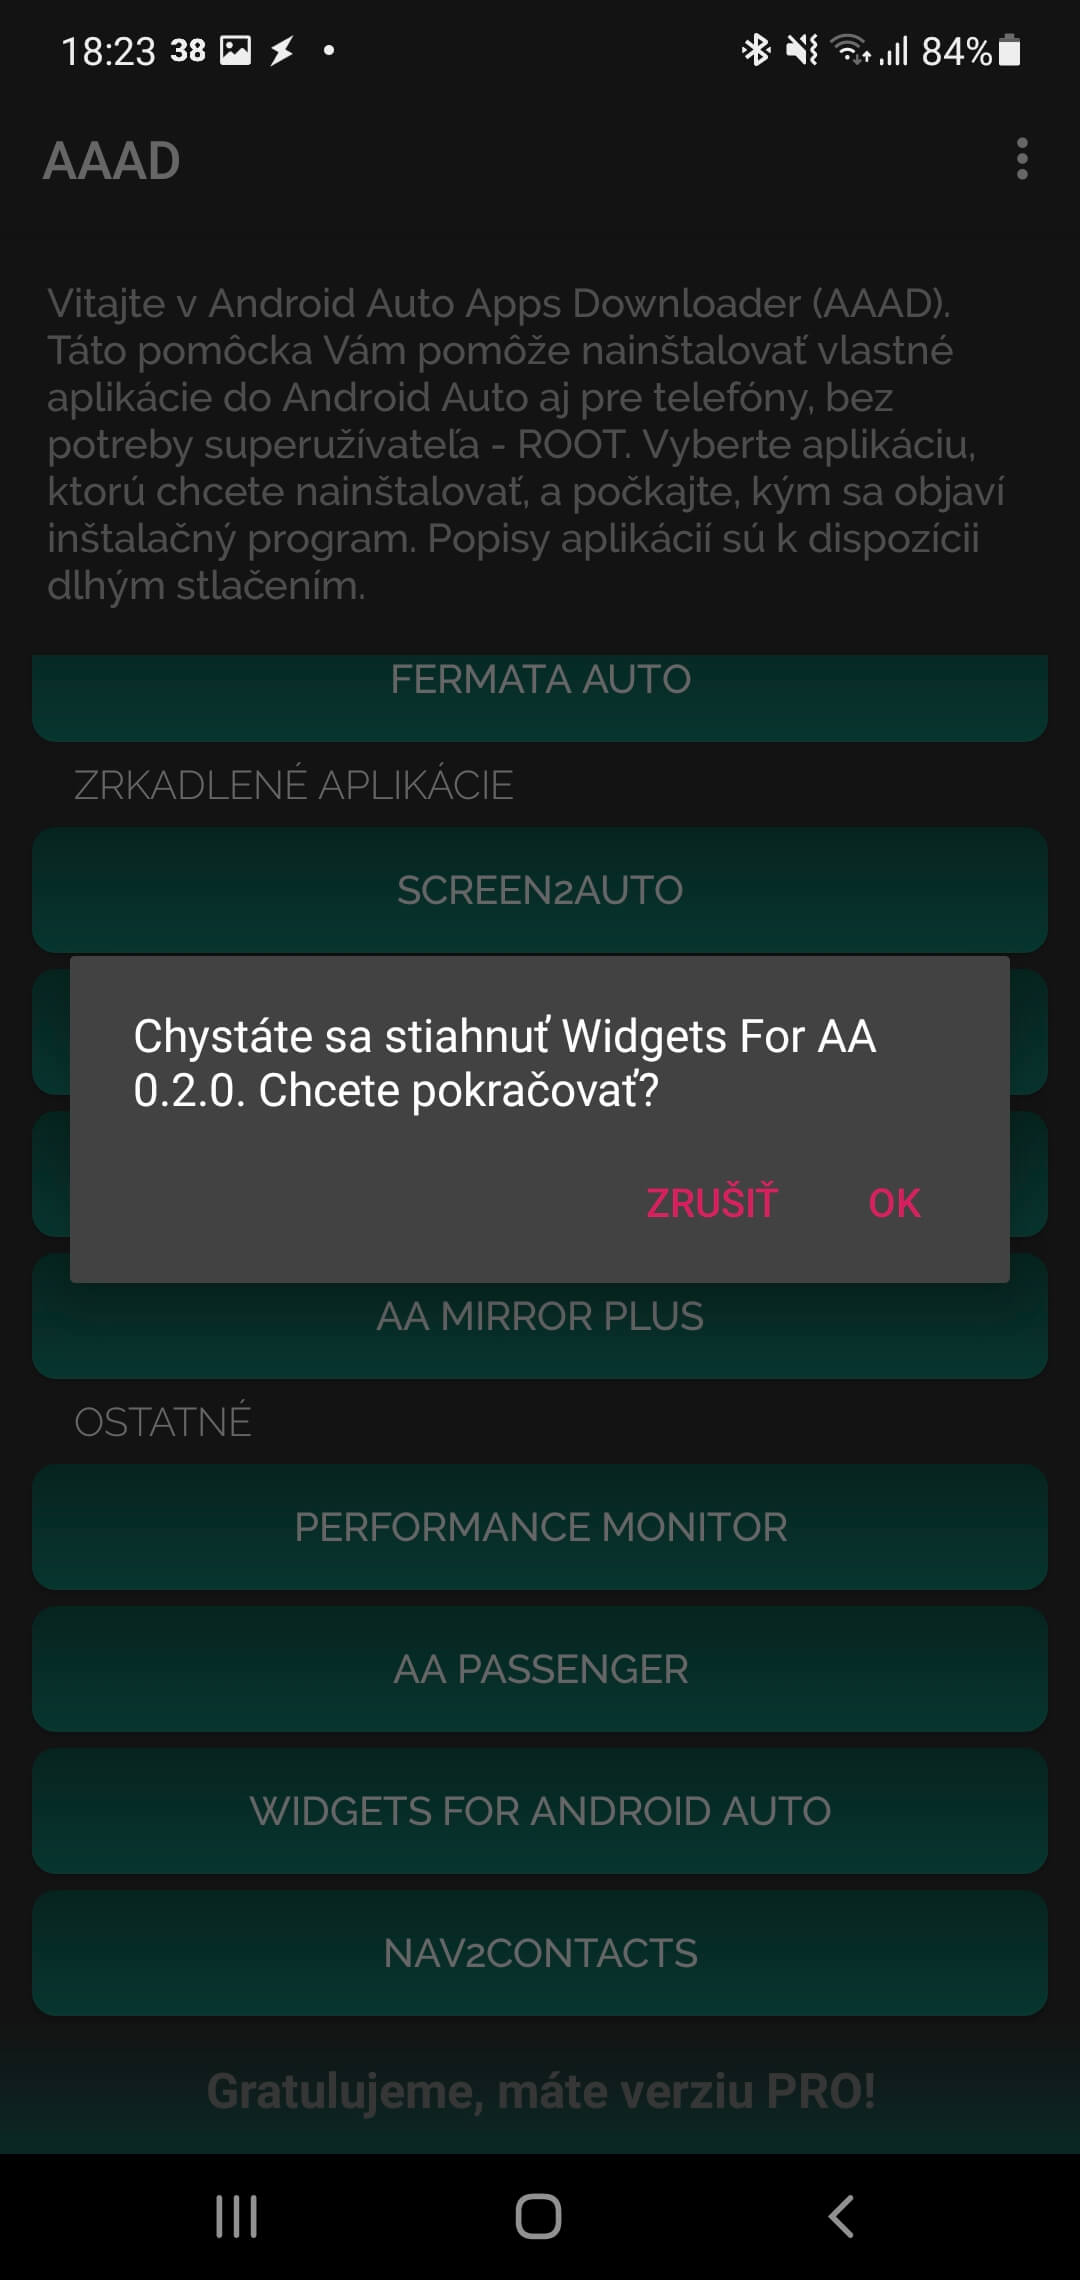 Android Auto Apps Downloader